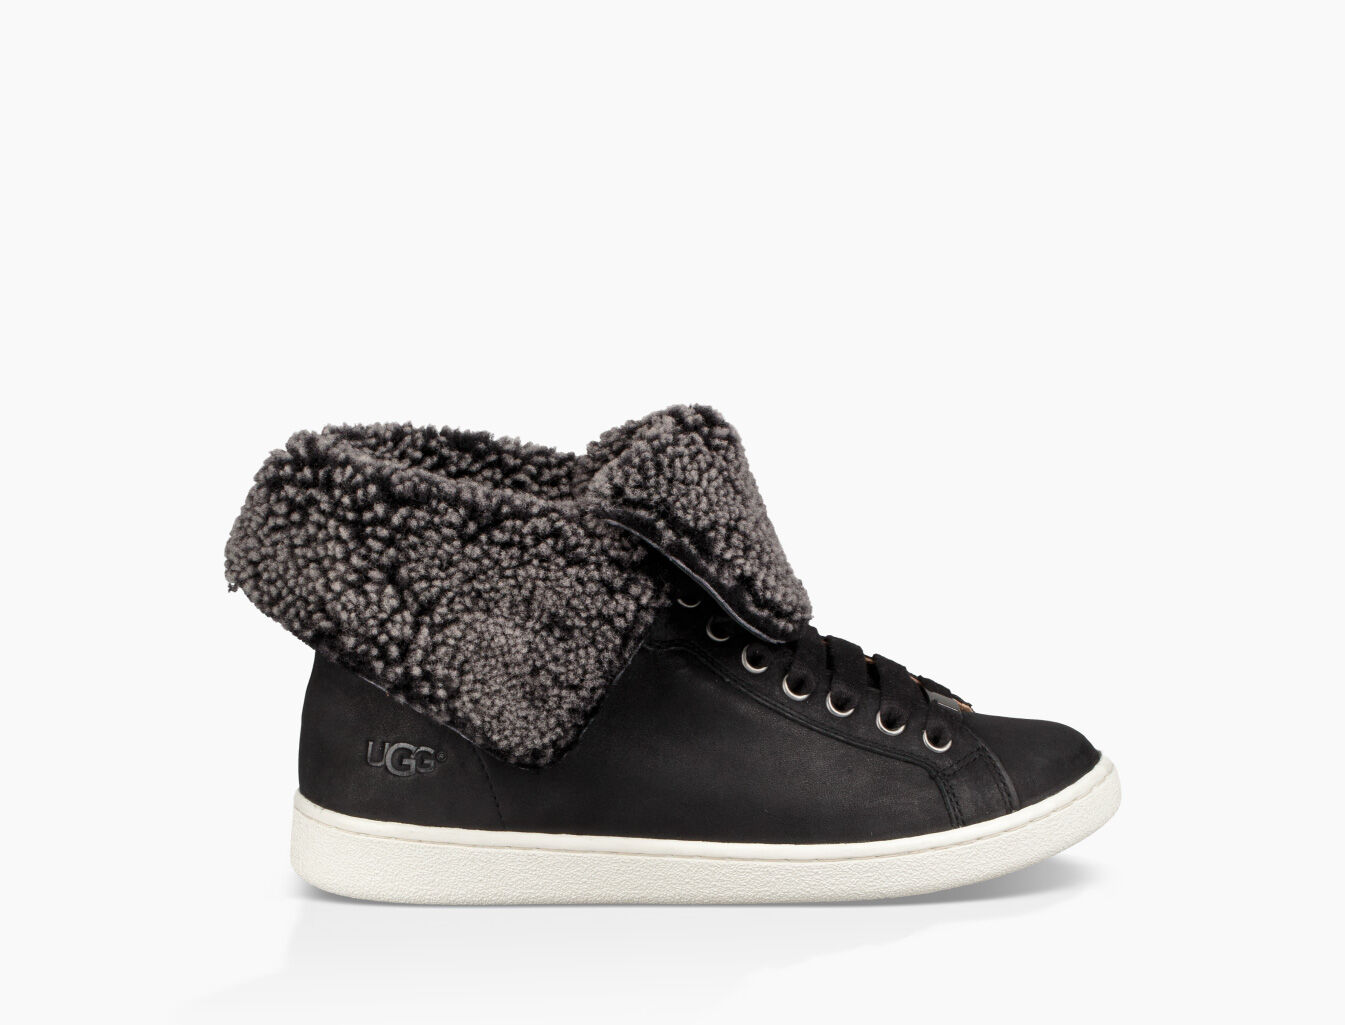 UGG STARLYN - Lace-up boots - black y0yNHfP